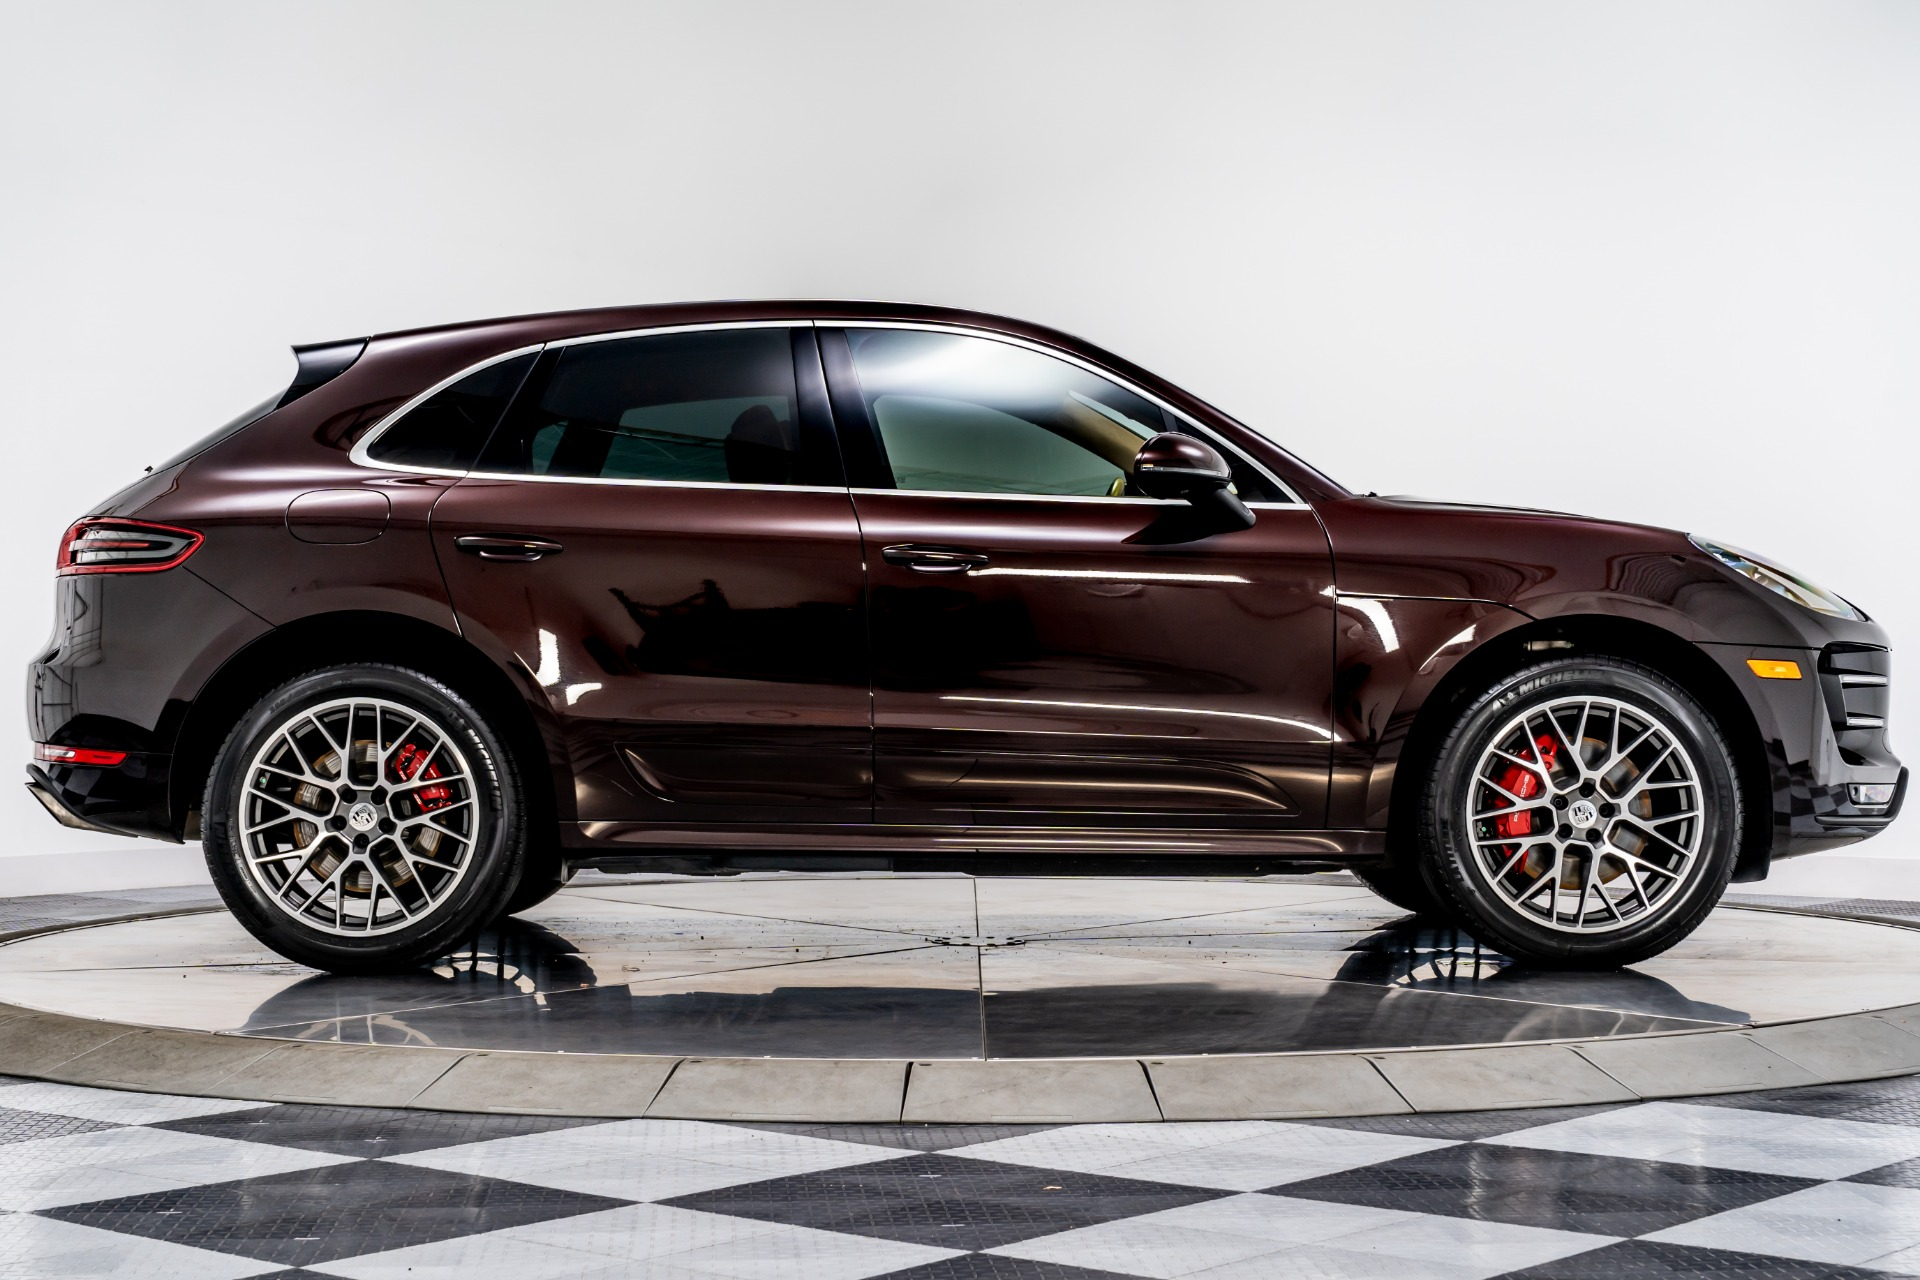 Used 2017 Porsche Macan Turbo For Sale 54 900 Marshall Goldman Beverly Hills Stock W21506